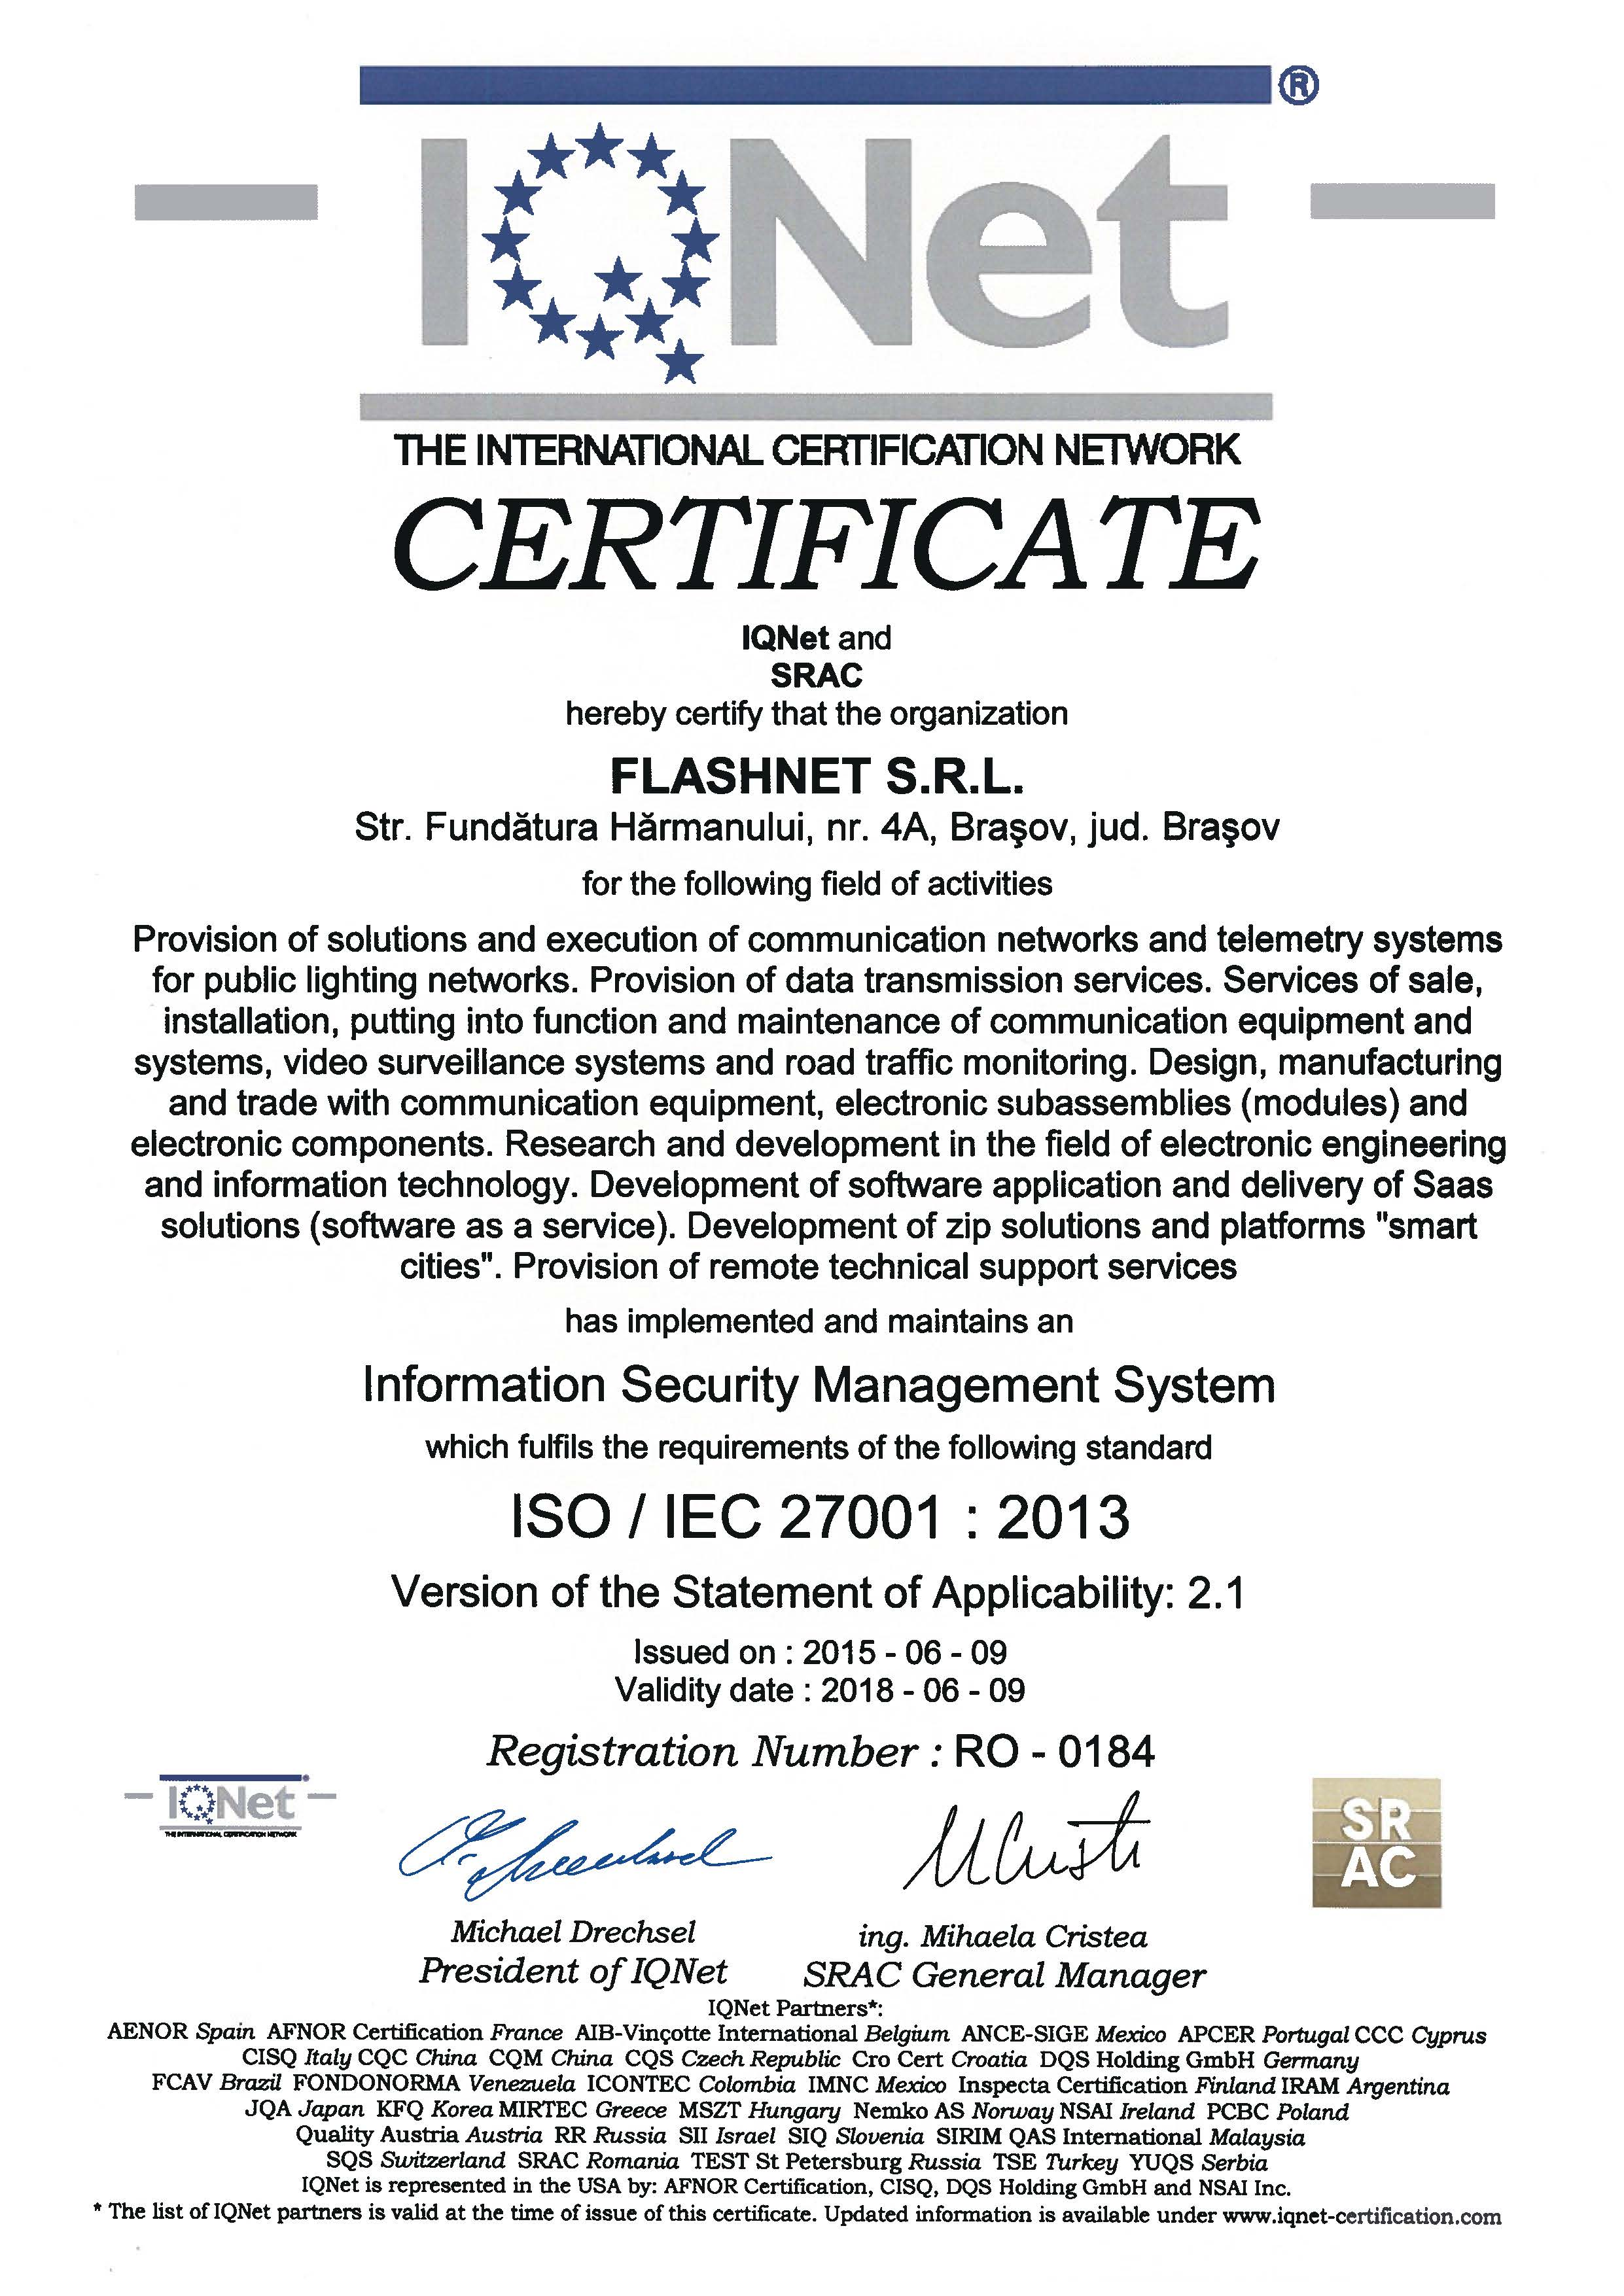 ISO 27001 Information security management system certificate